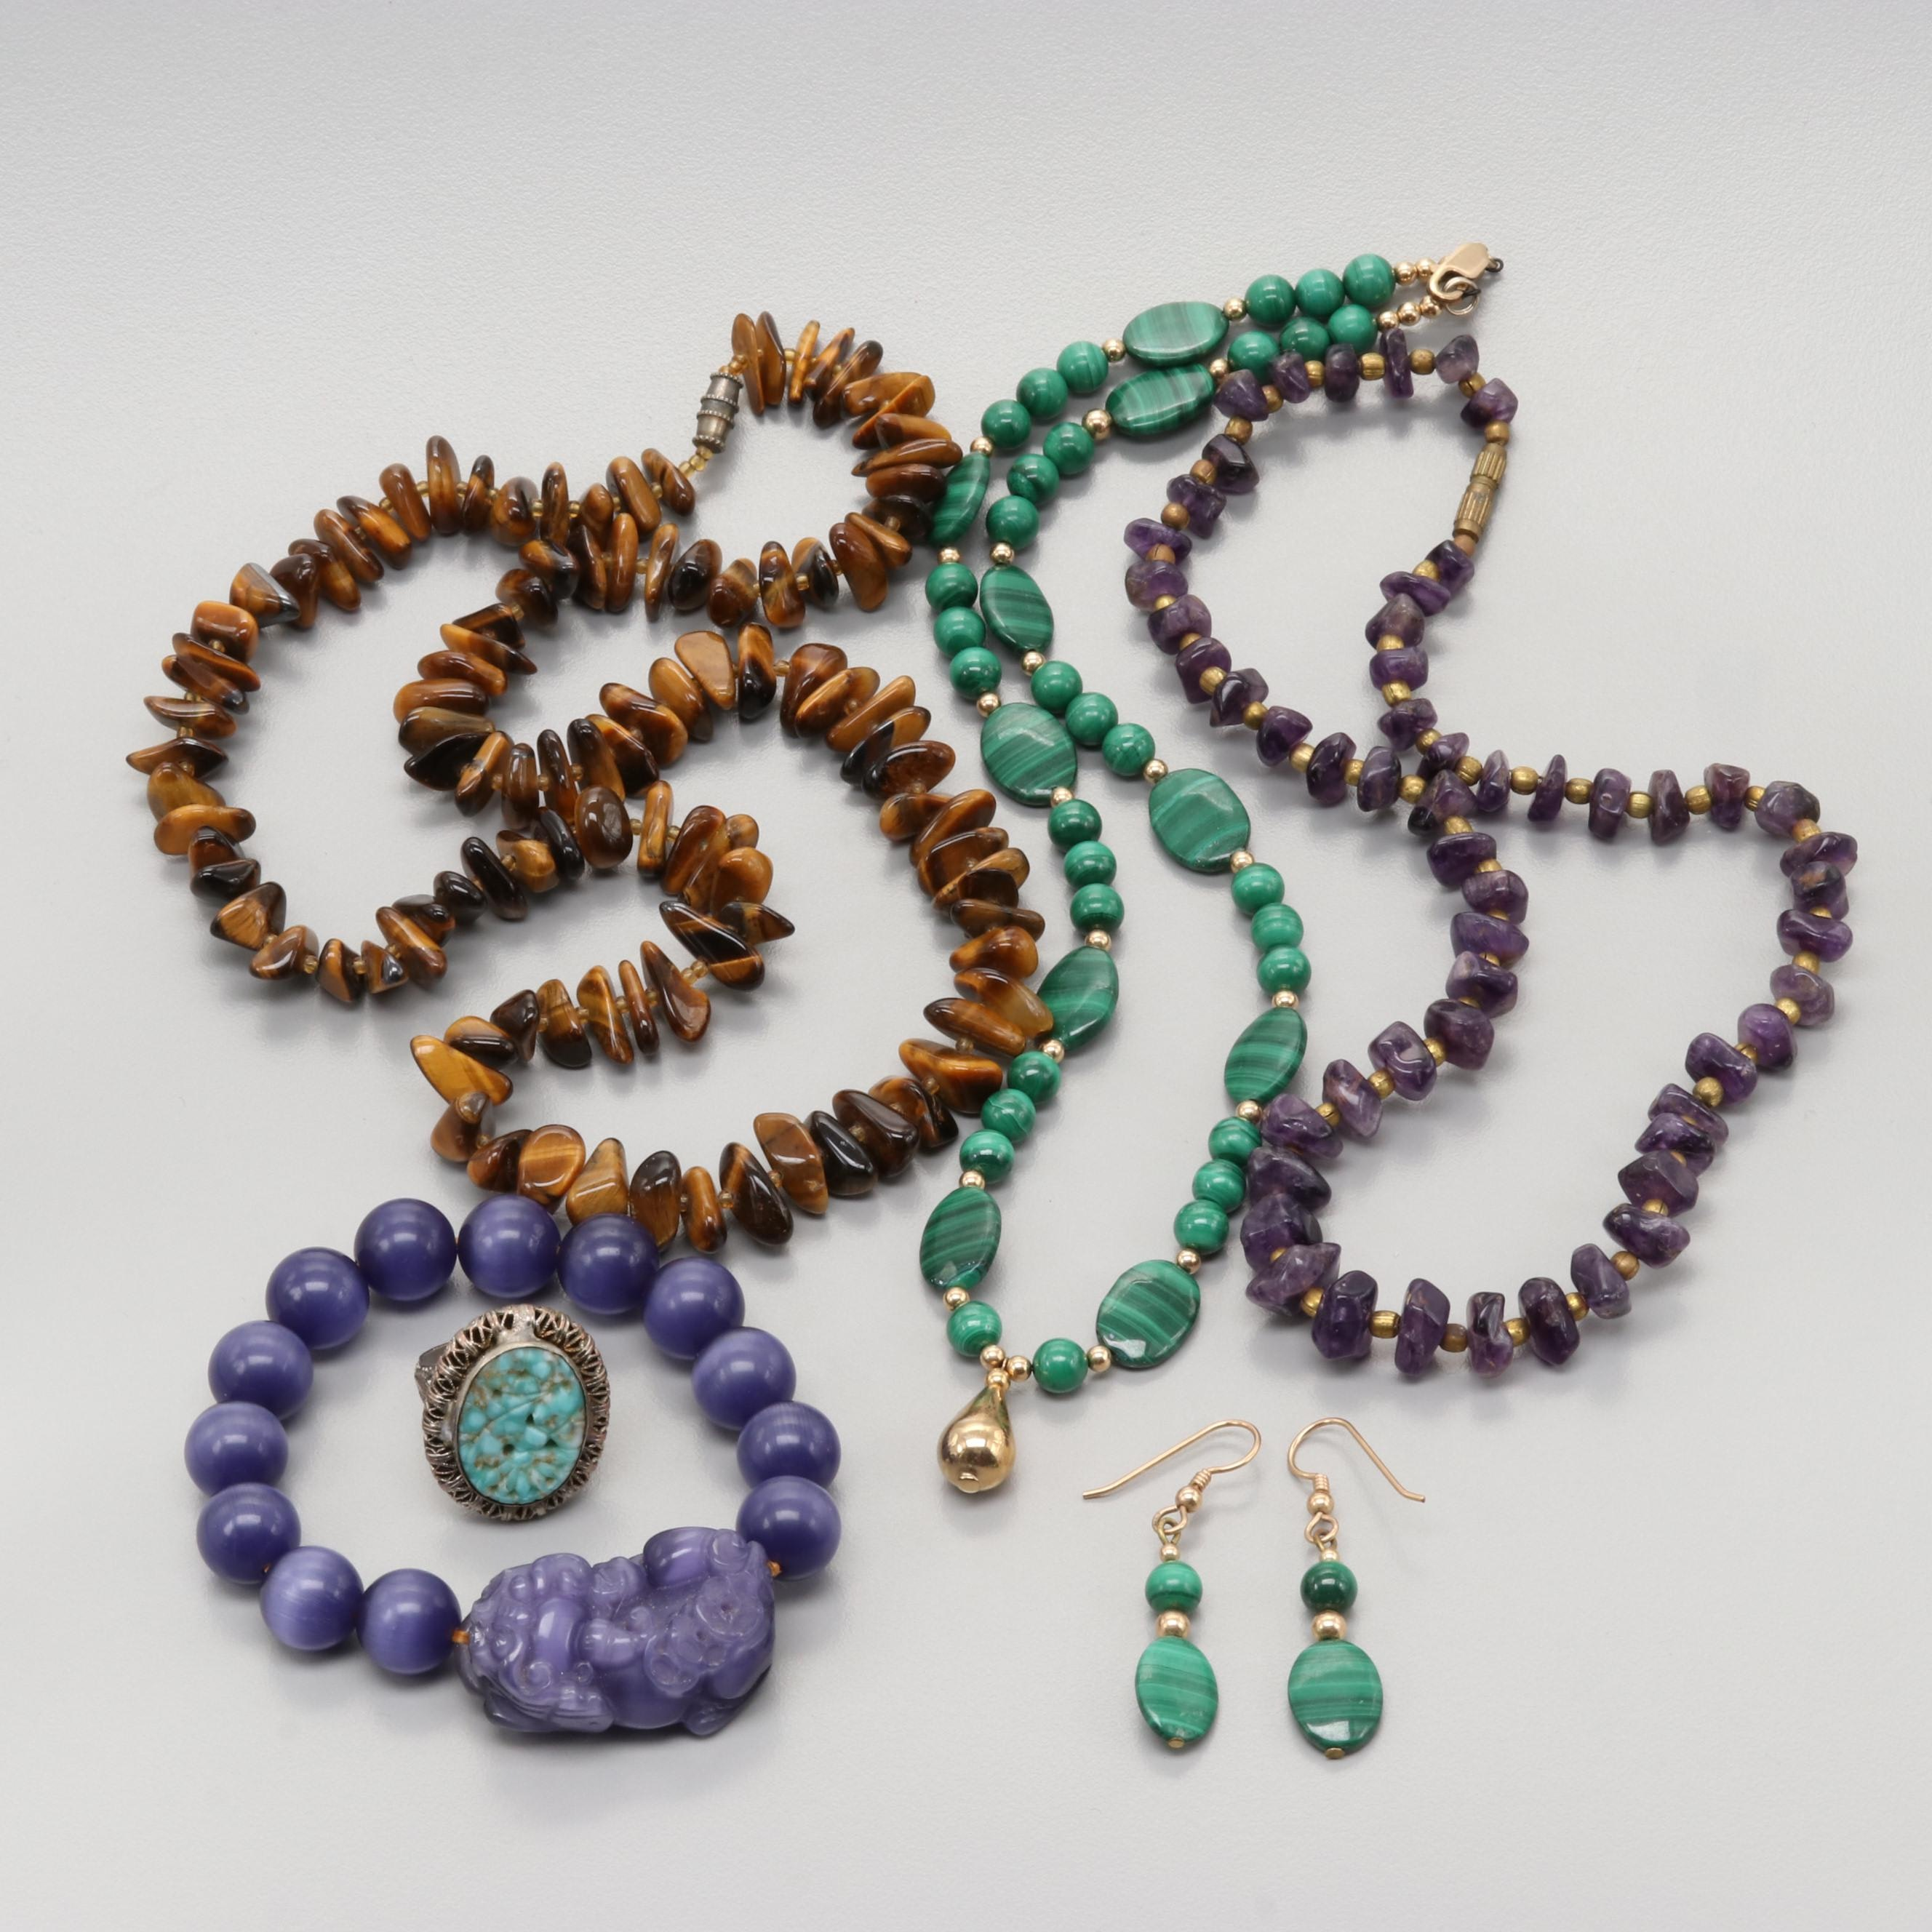 Gold Tone Amethyst Tiger's Eye and Malachite Necklaces, Ring and Earrings